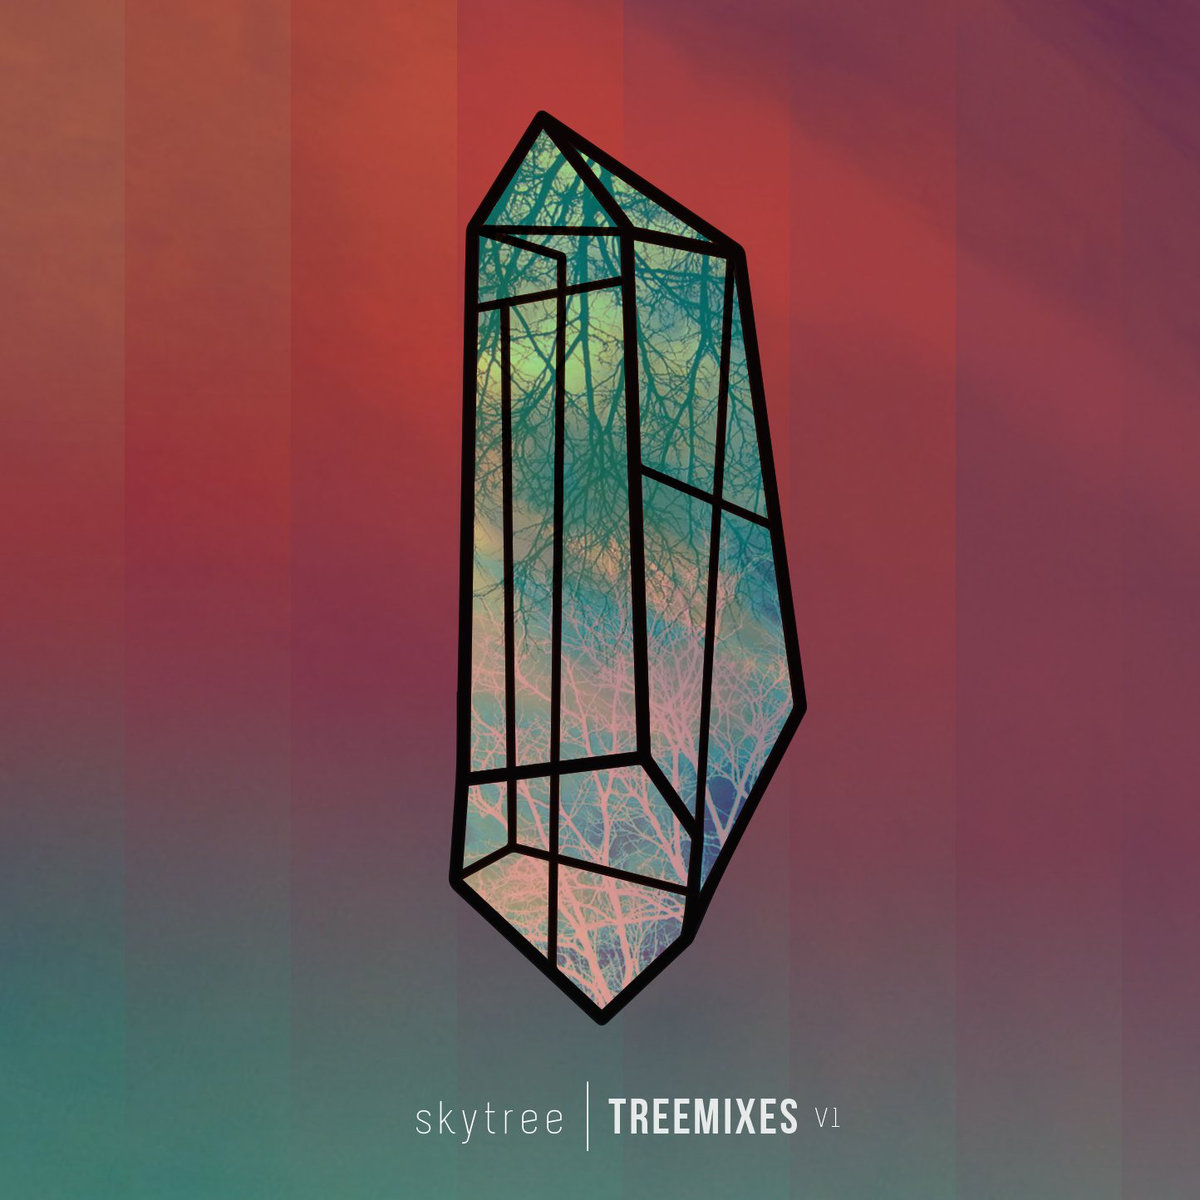 Skytree - Quartz Resonance (Space Jesus remix) @ 'Treemixes V1' album (Austin)